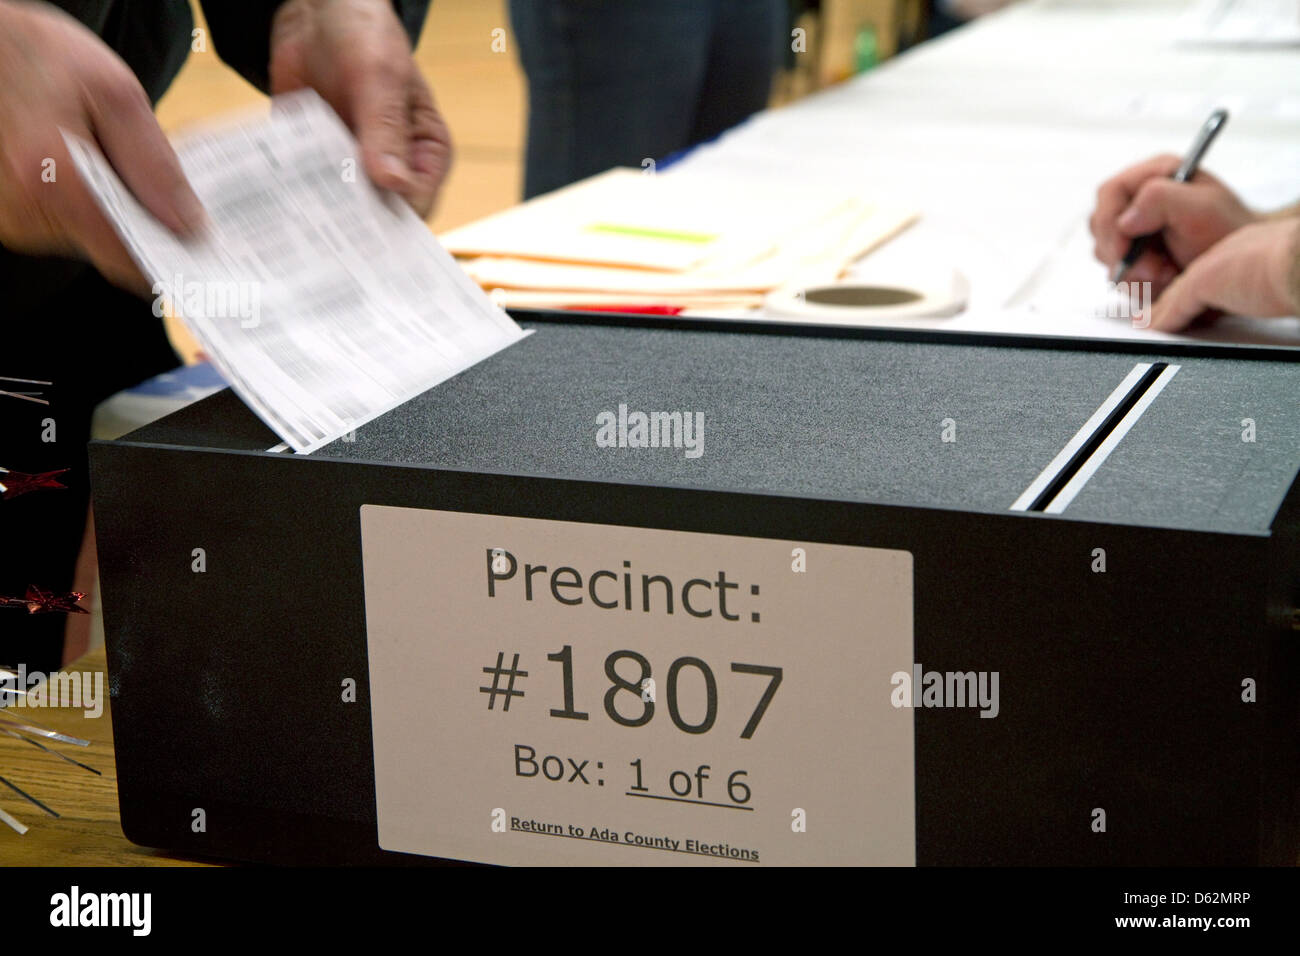 Voted ballot being put into a ballot box in Boise, Idaho, USA. - Stock Image